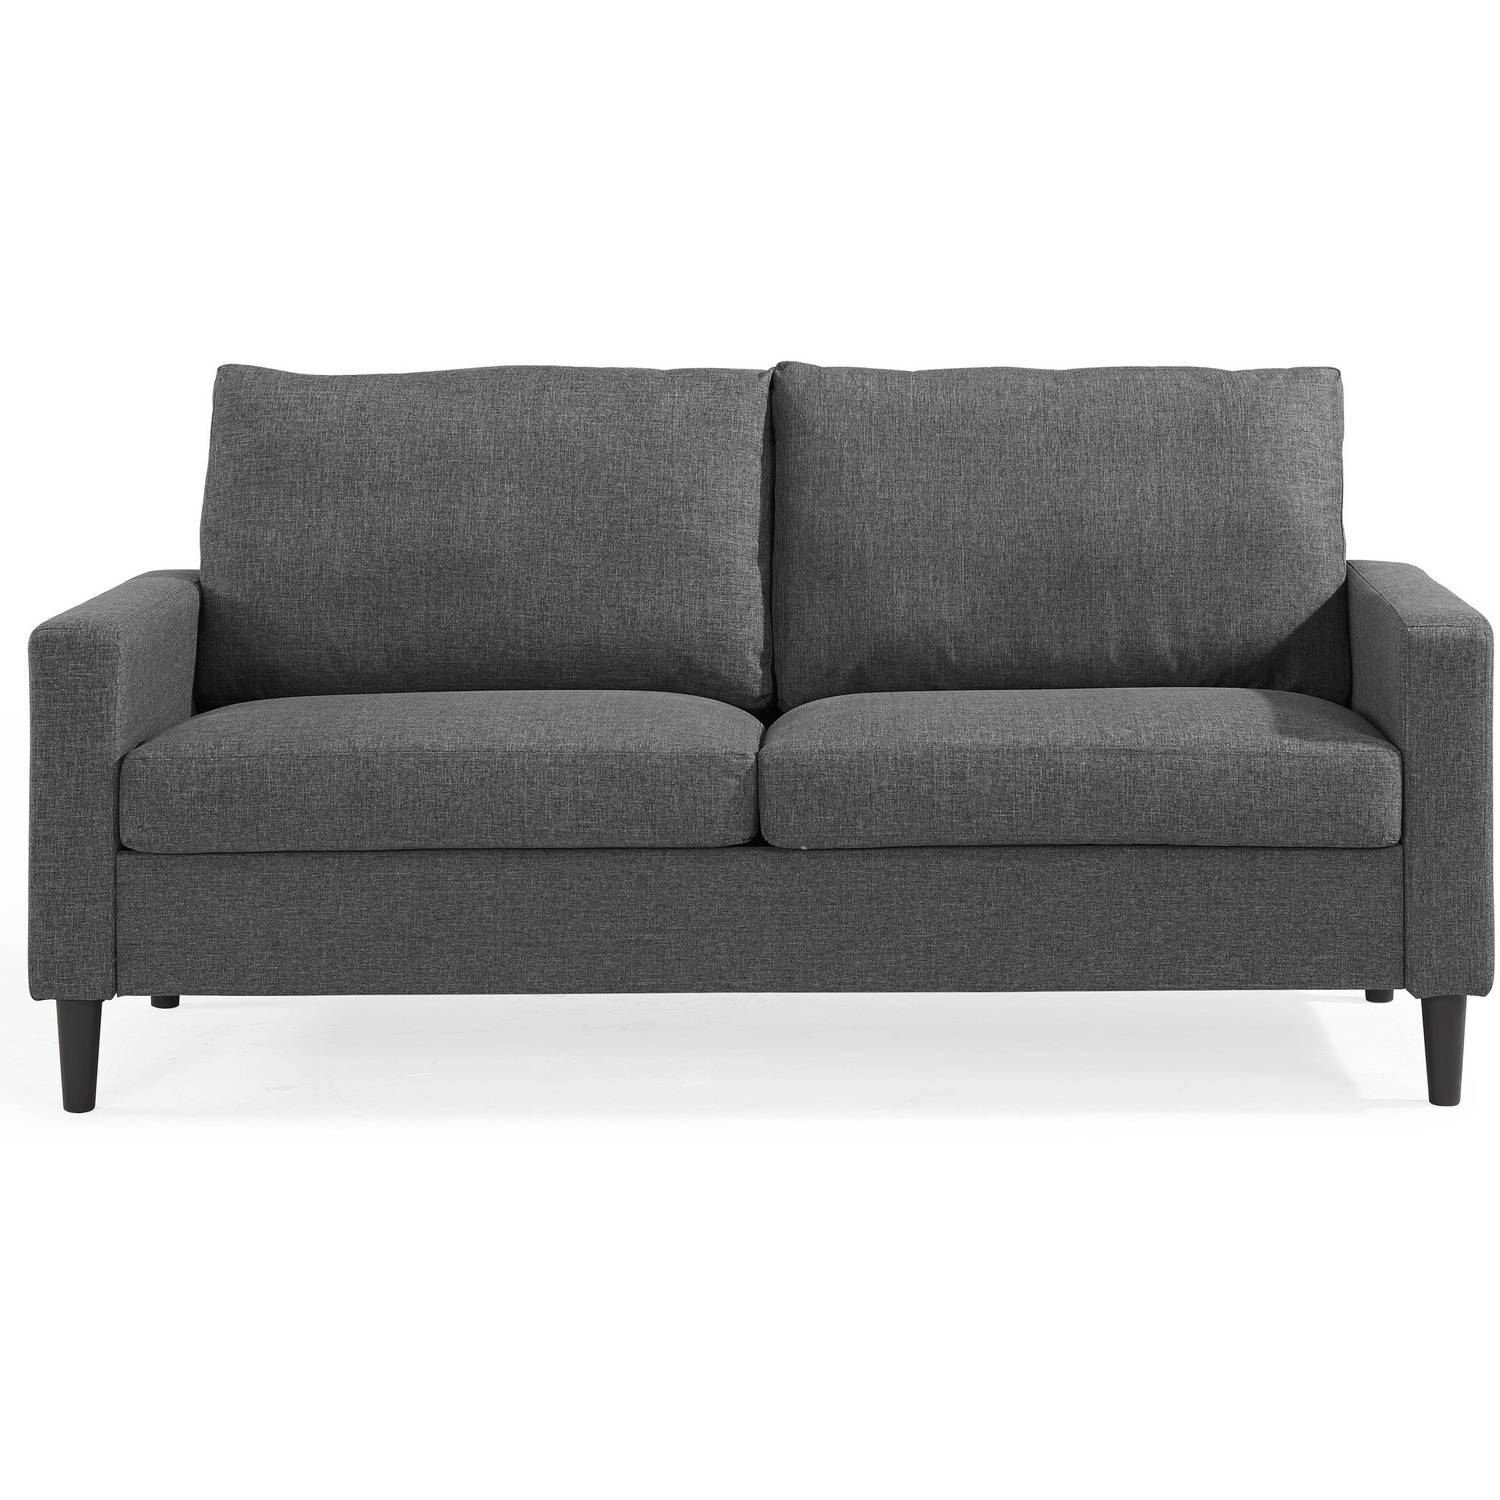 Mainstays Apartment Sofa, Multiple Colors - Walmart in Mainstay Sofas (Image 12 of 15)